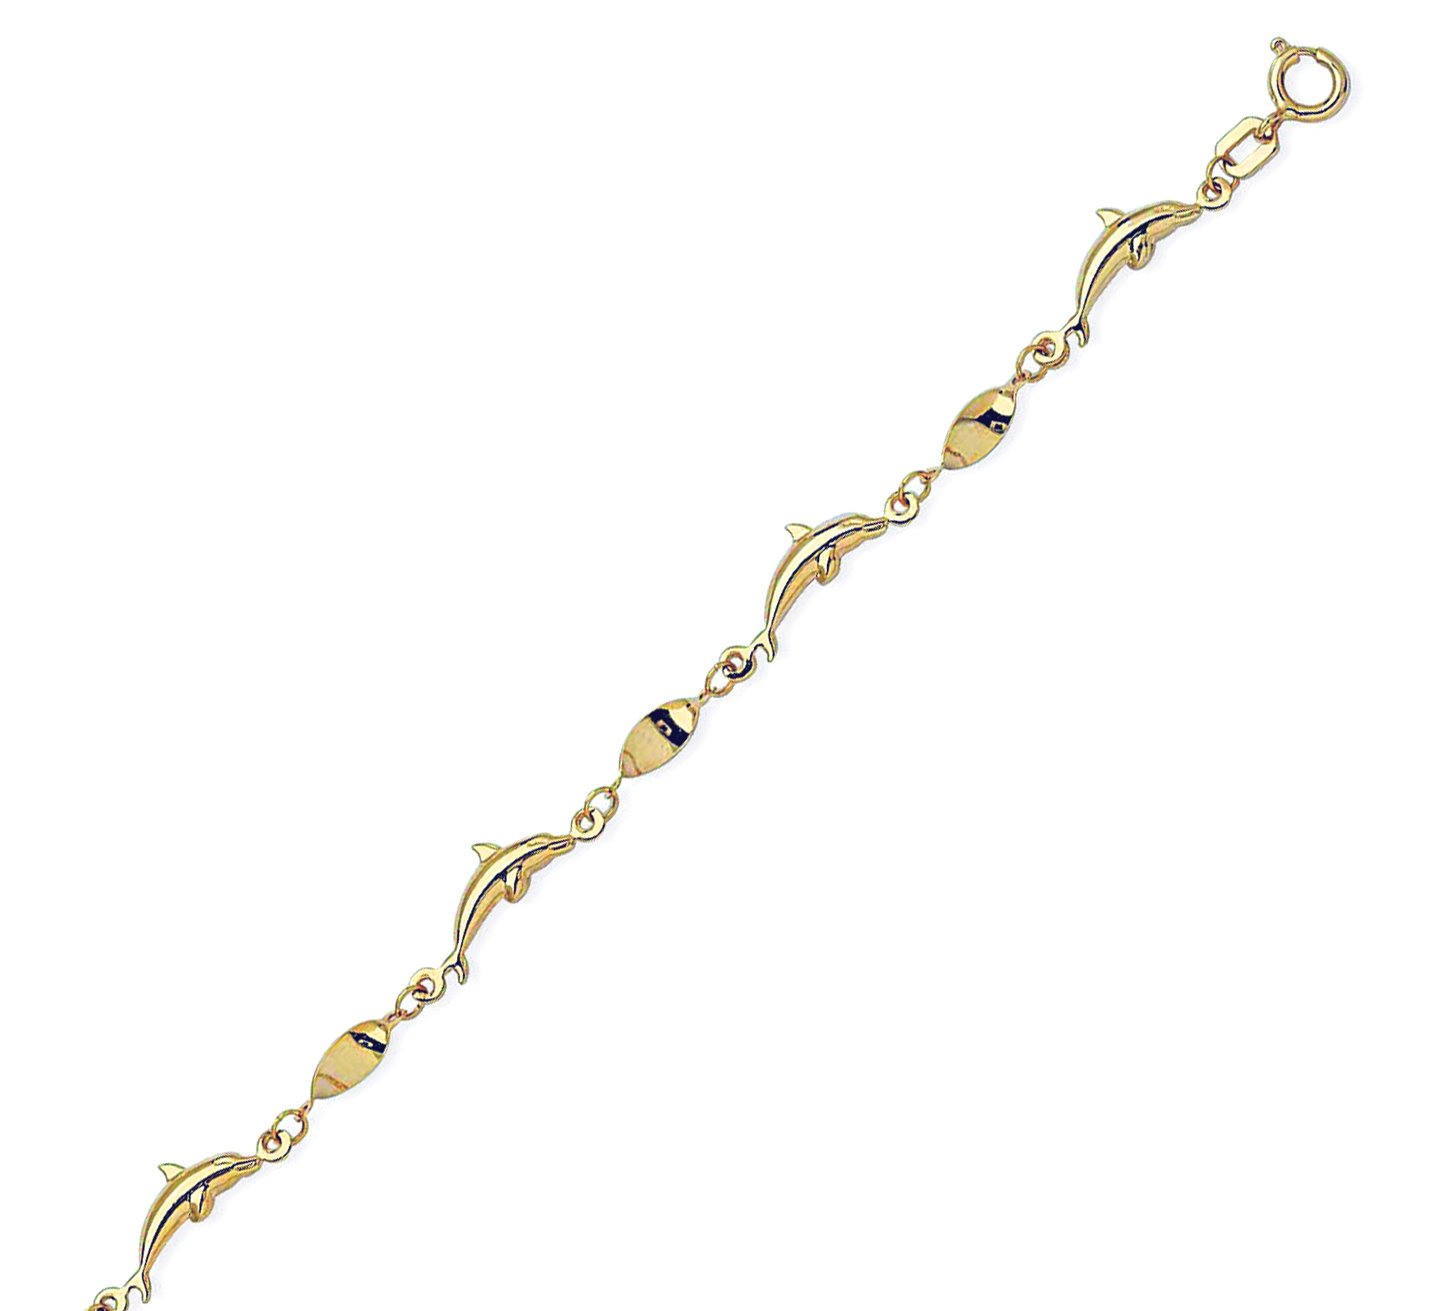 Anklet 14k Yellow Gold Twist Oval Links with Polished Dolphins Adjustable Length